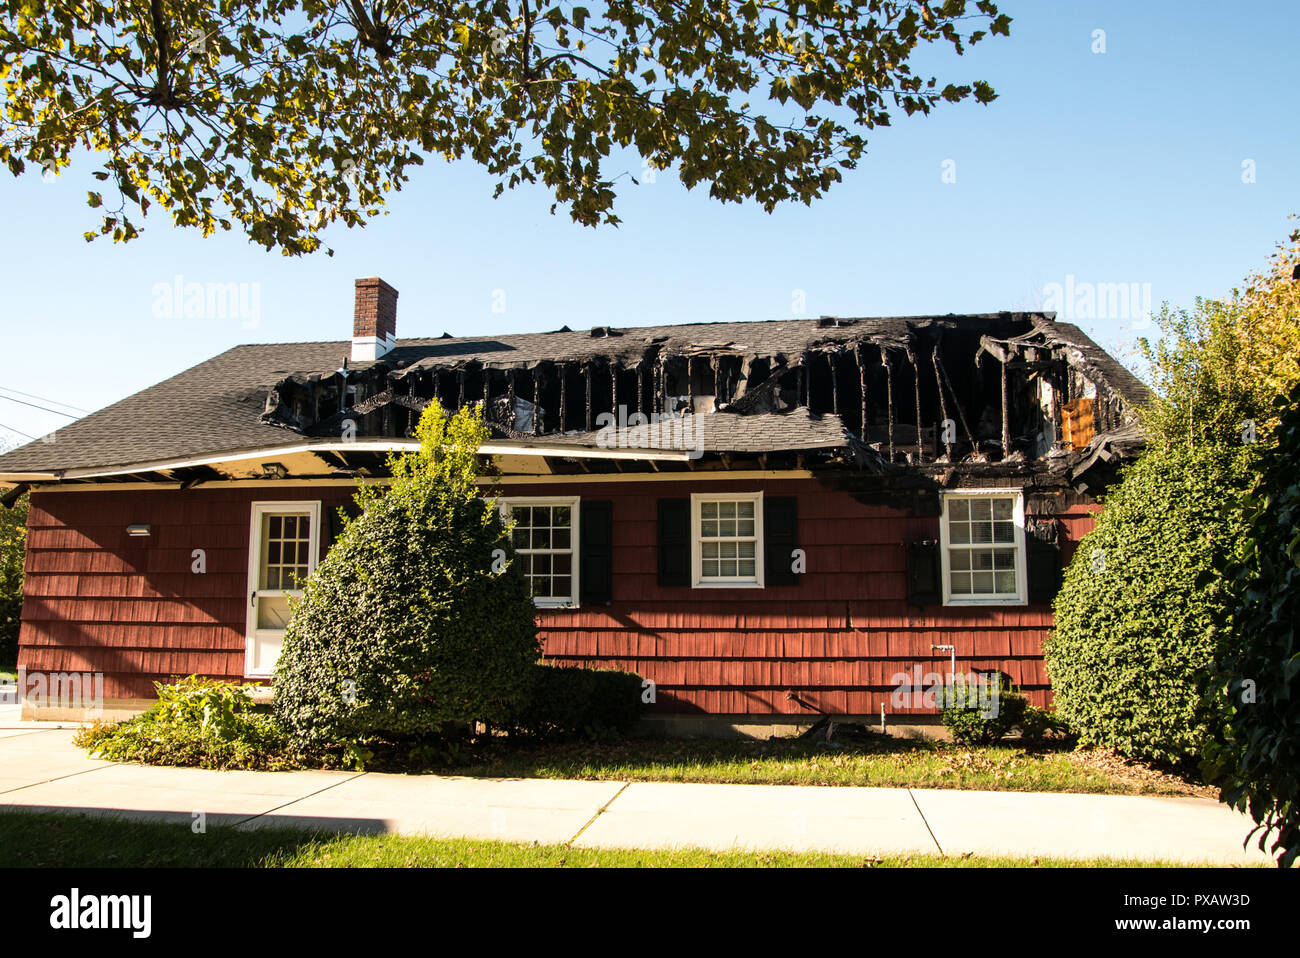 Small red house with roof and top floor destroyed by fire - Stock Image